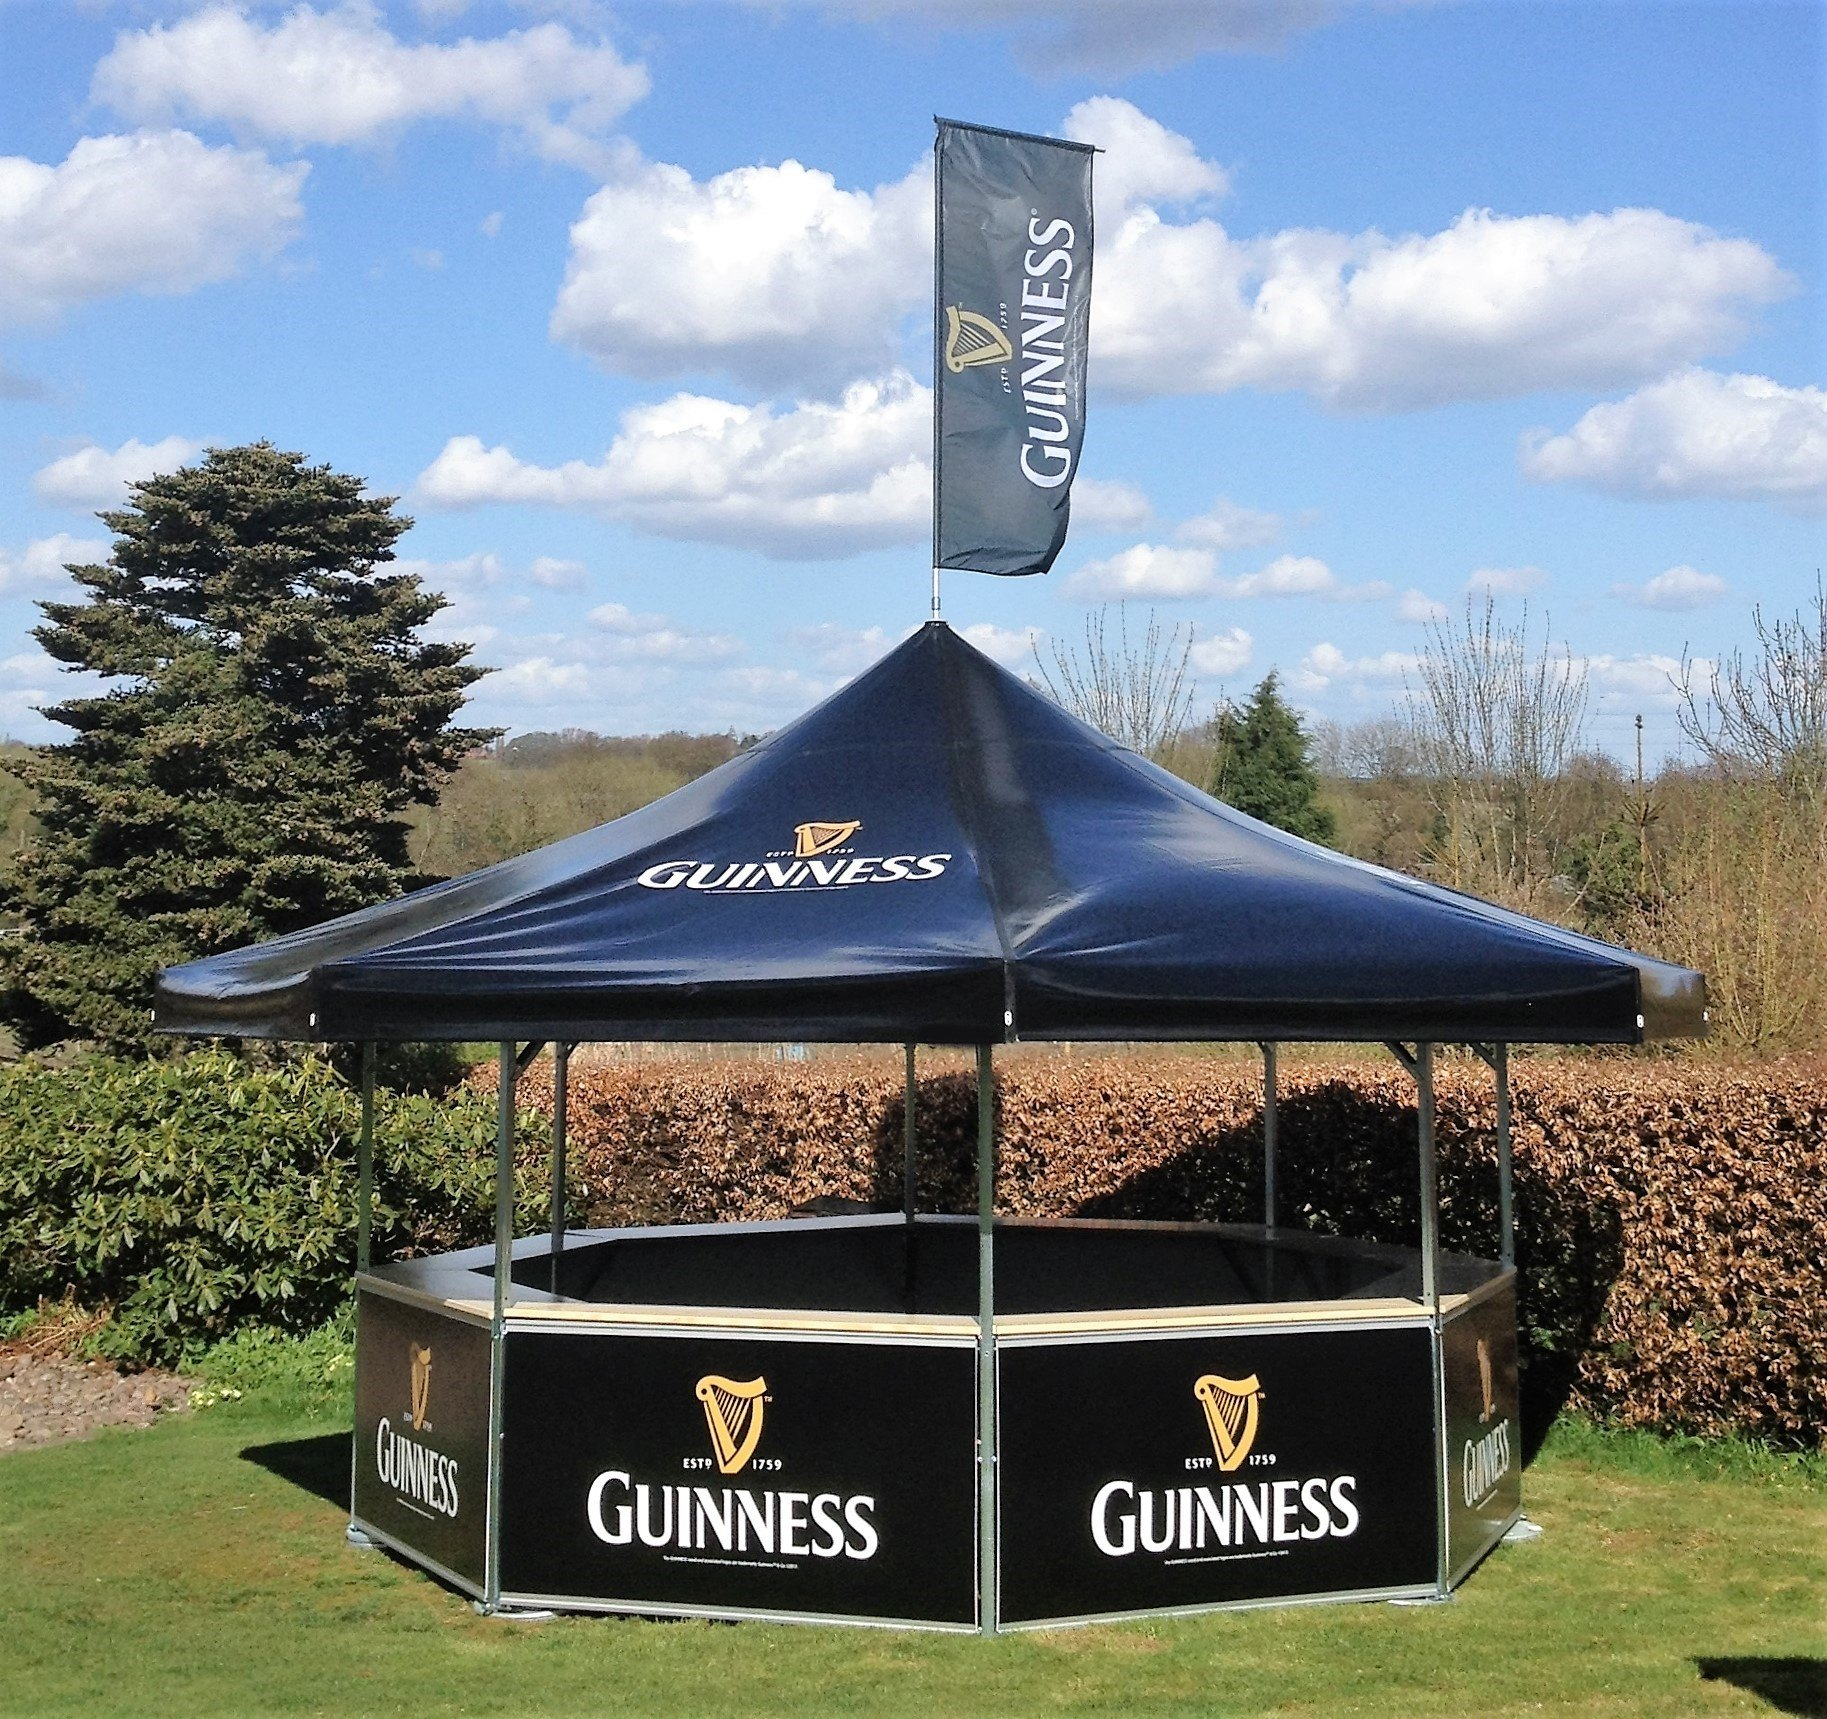 <p>Event, Mobile & Stadia Bars – Tents & Marquees – Octagonal Pavilion – Outdoor Guinness Event Bar.</p> <p> </p> <p>Fully branded Guinness Bar used at racecourse events etc.  Can be used at football stadiums hosting concerts and other events.</p> <p> </p> <p>Includes fully branded roof flag accessory enabling better visibility of location of bar at event or venue</p>